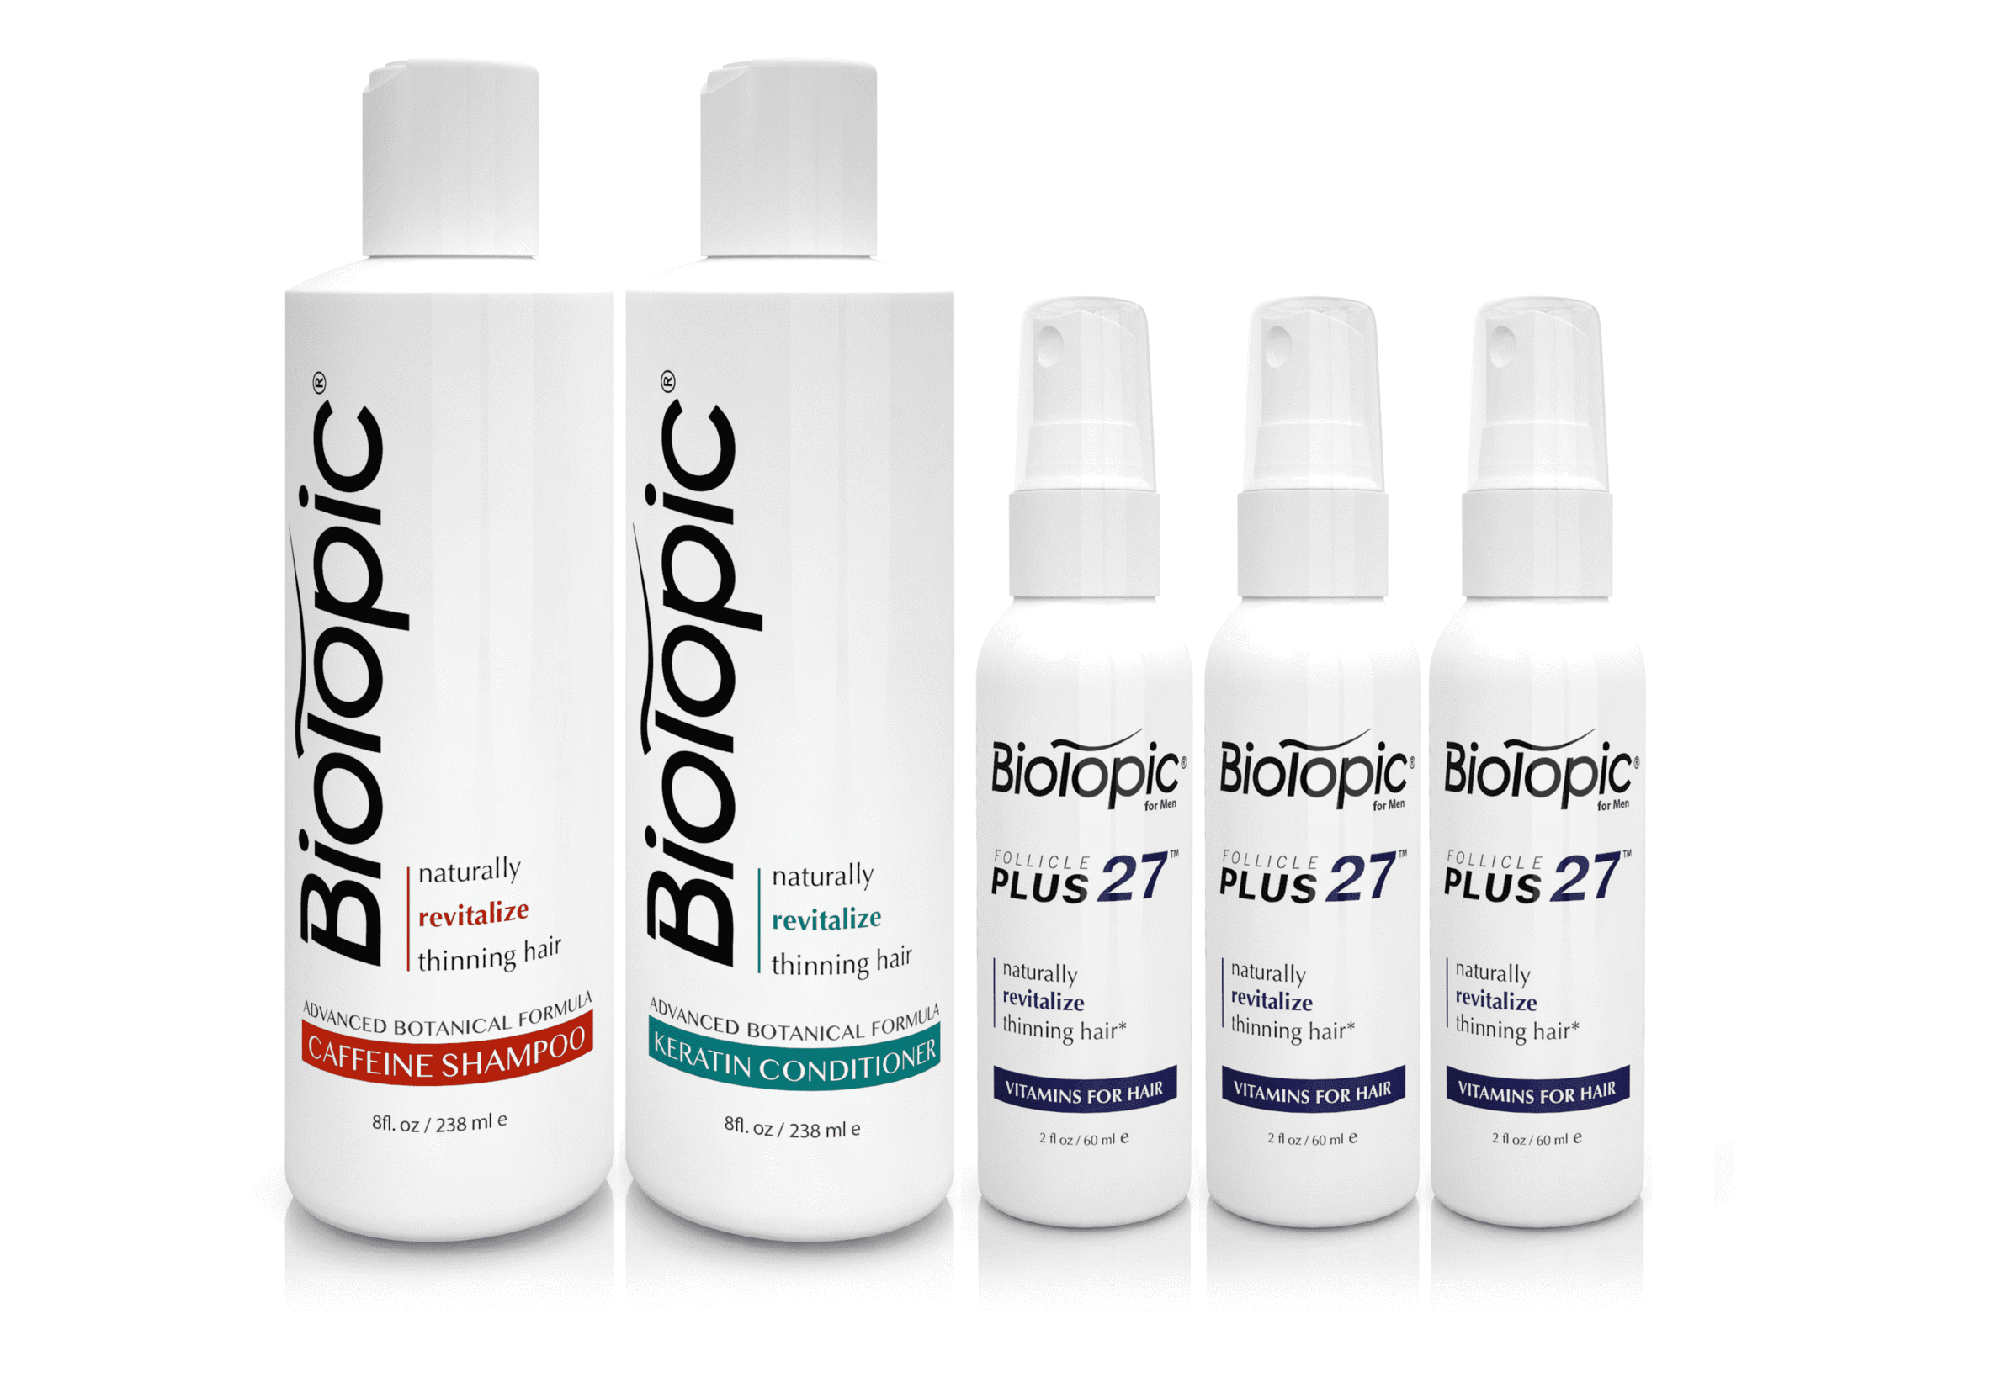 Biotopic Hair Regrowth for men